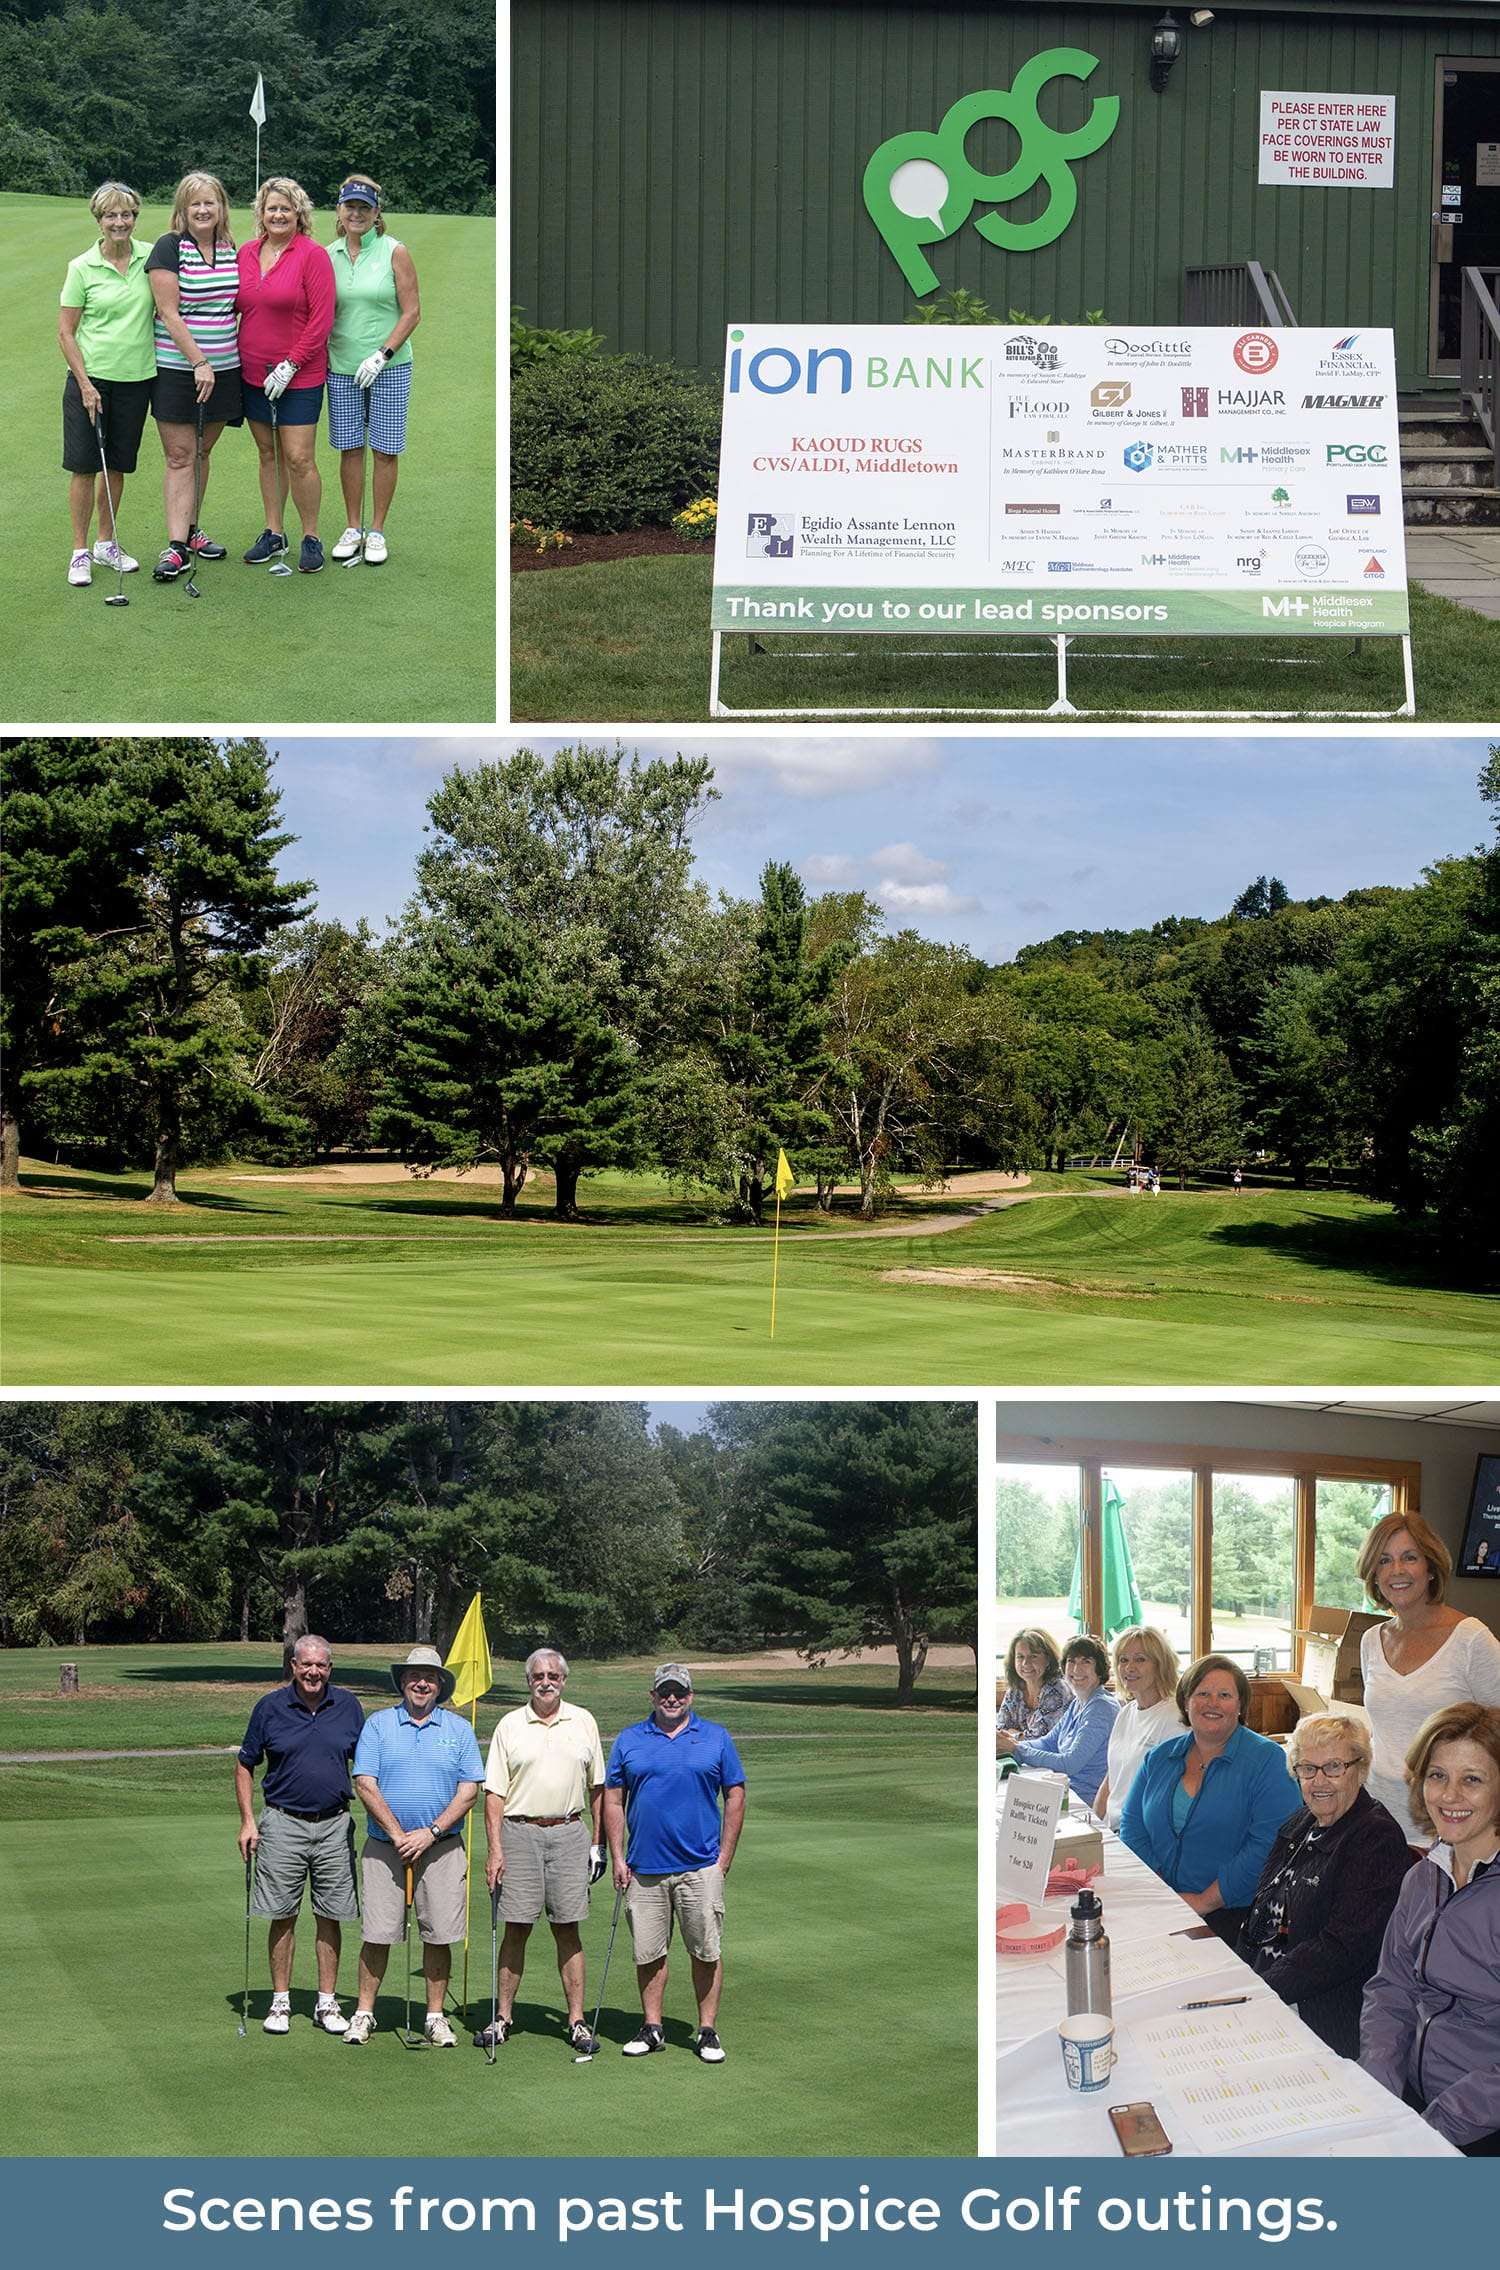 Scenes from Hospice Golf outings.